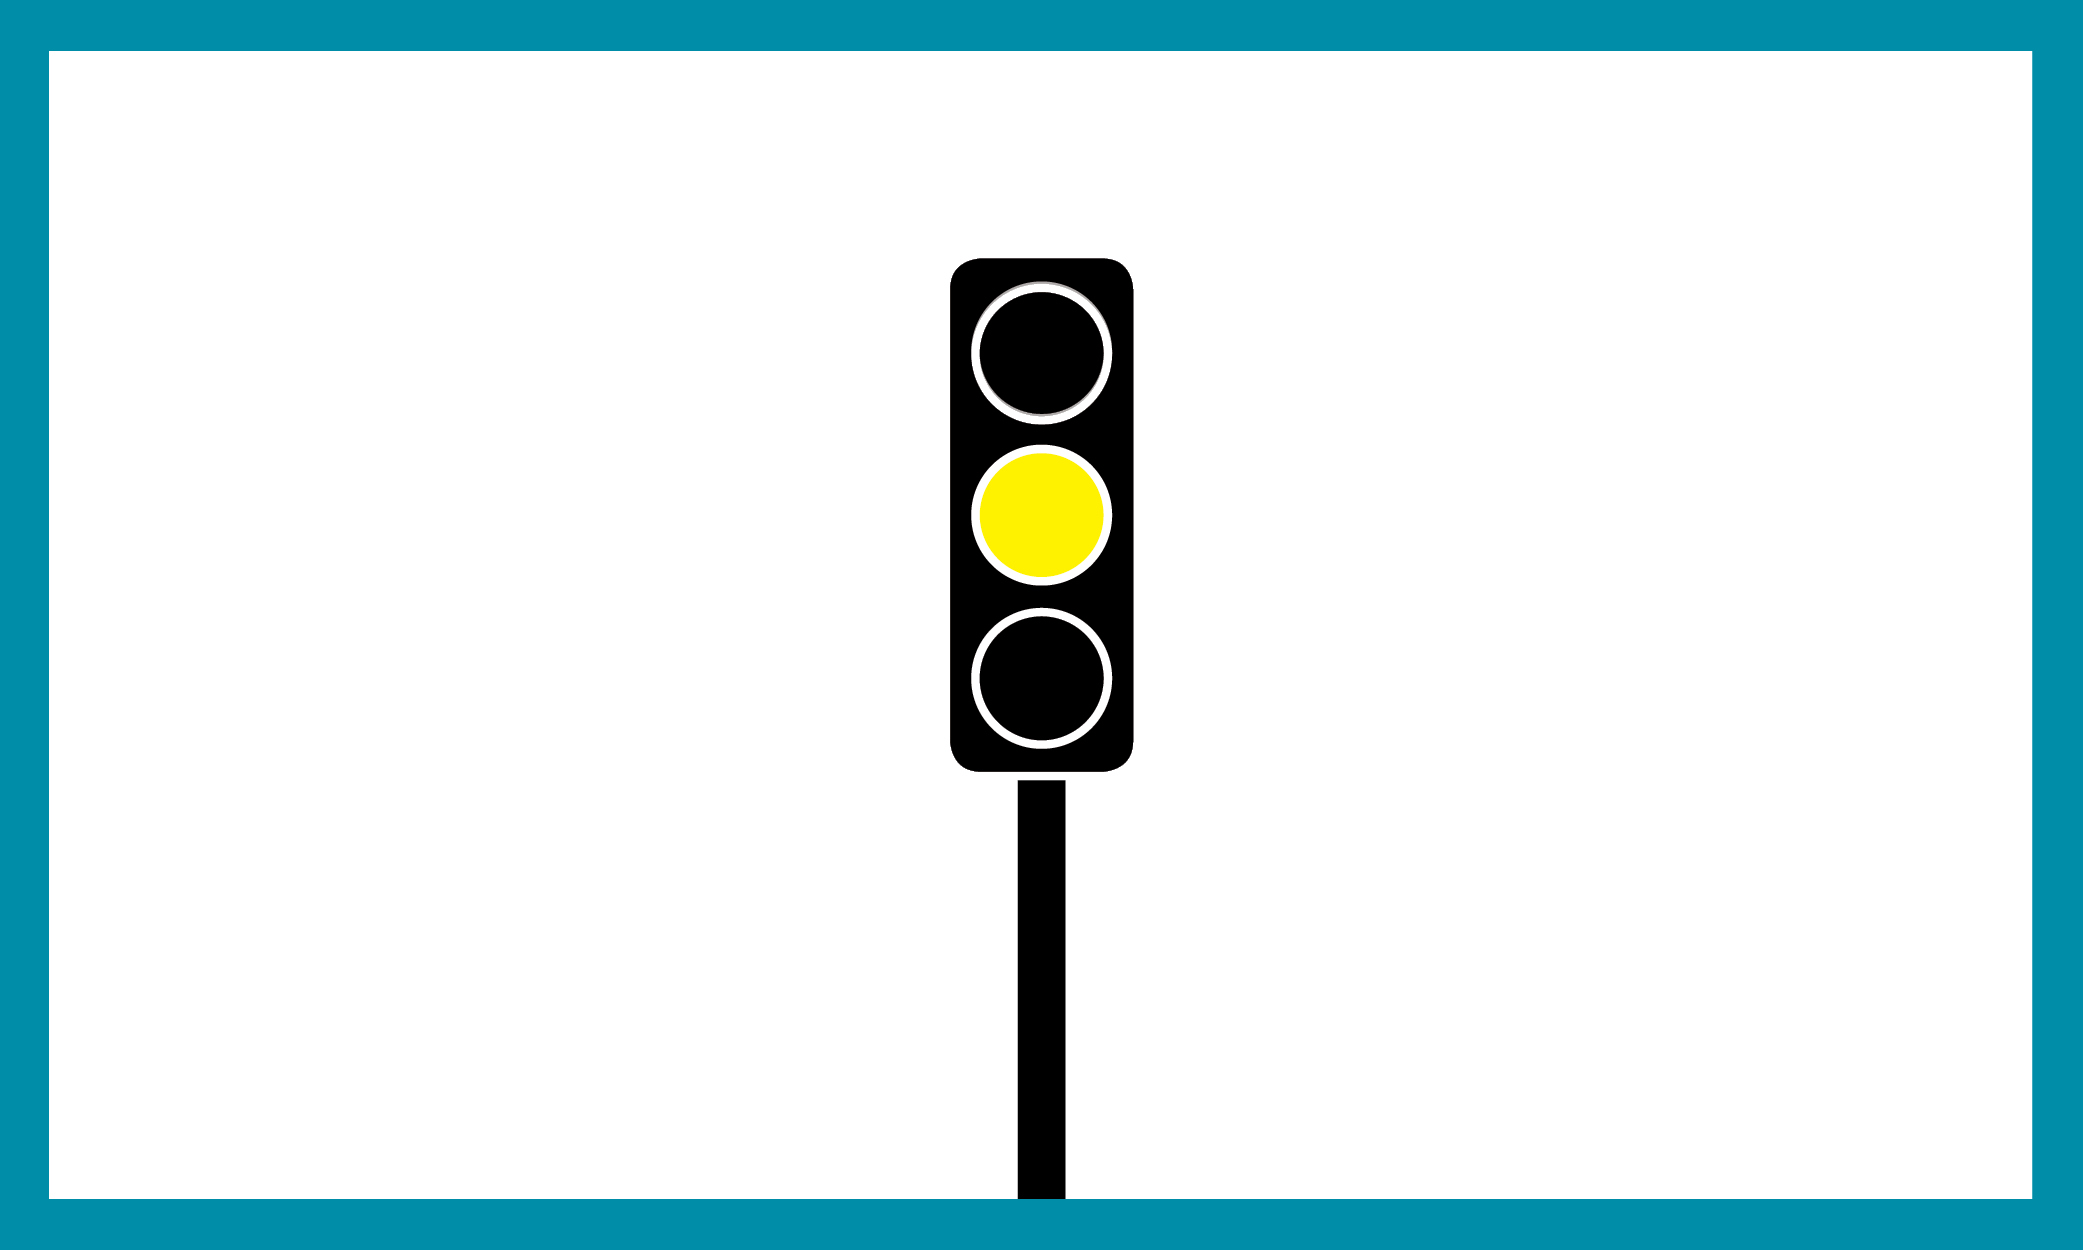 Graphic of a traffic light